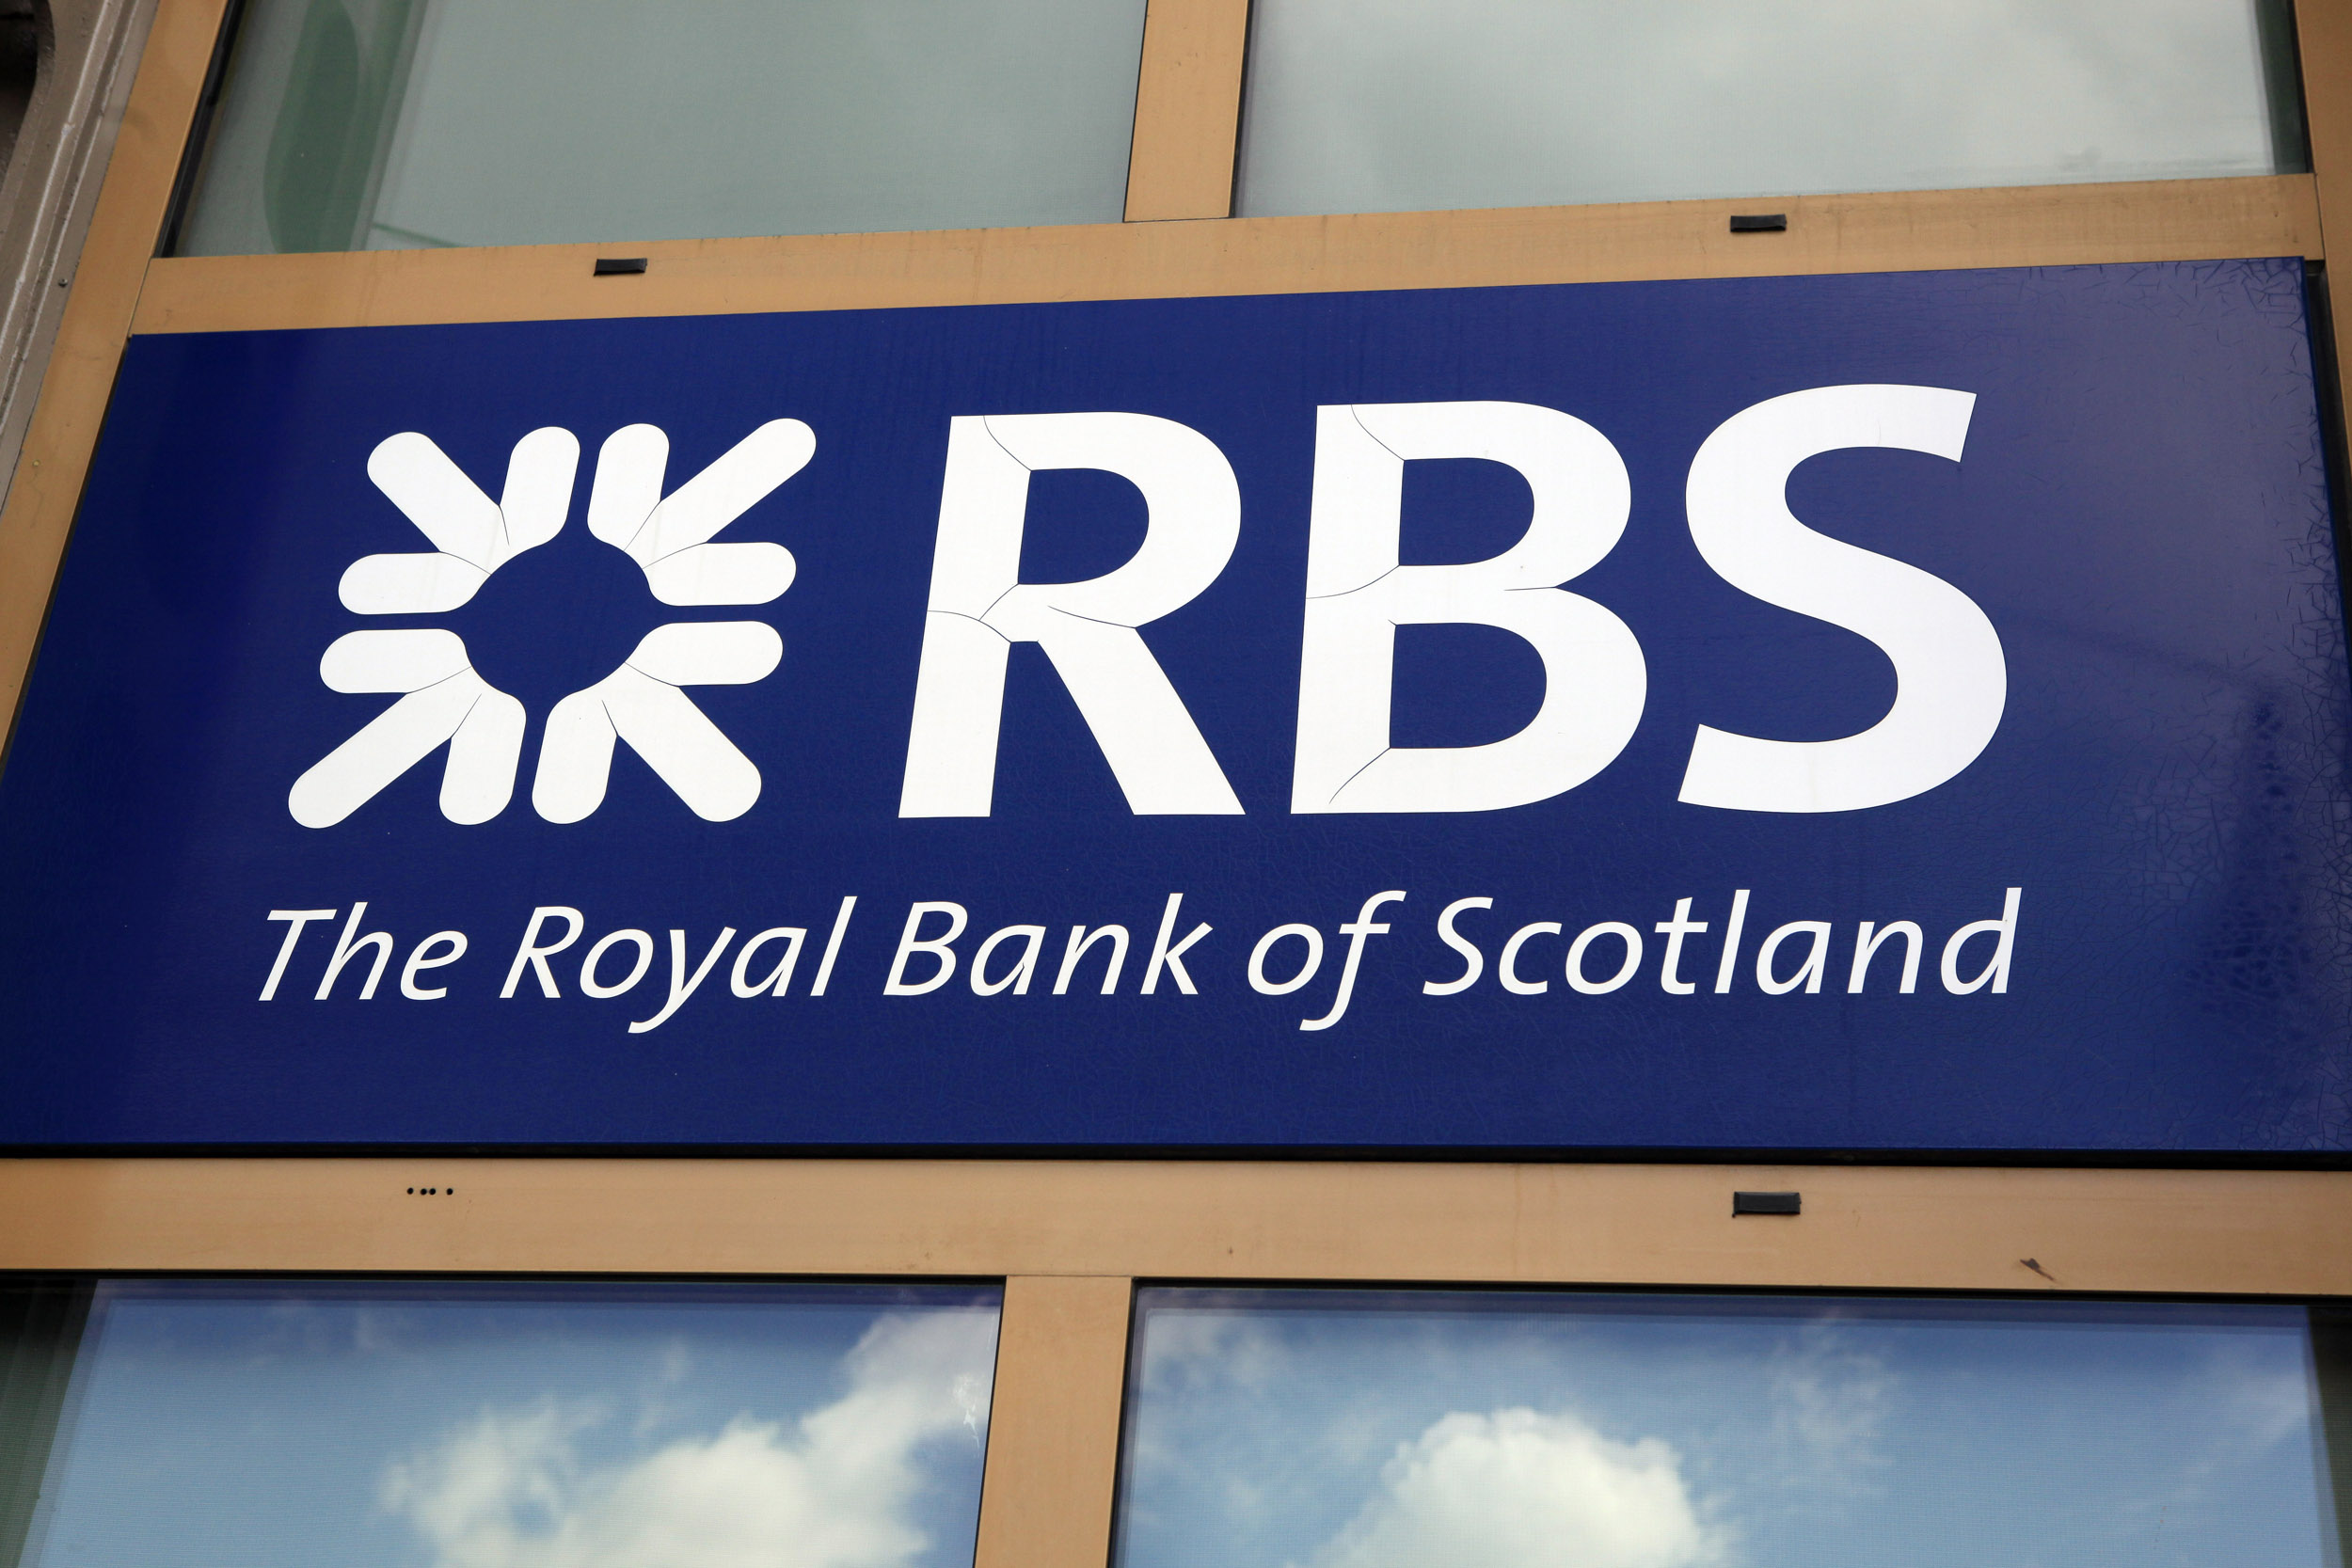 Griekenland, Athene, RBS bank, Royal Bank of Scotland, logo, Greece